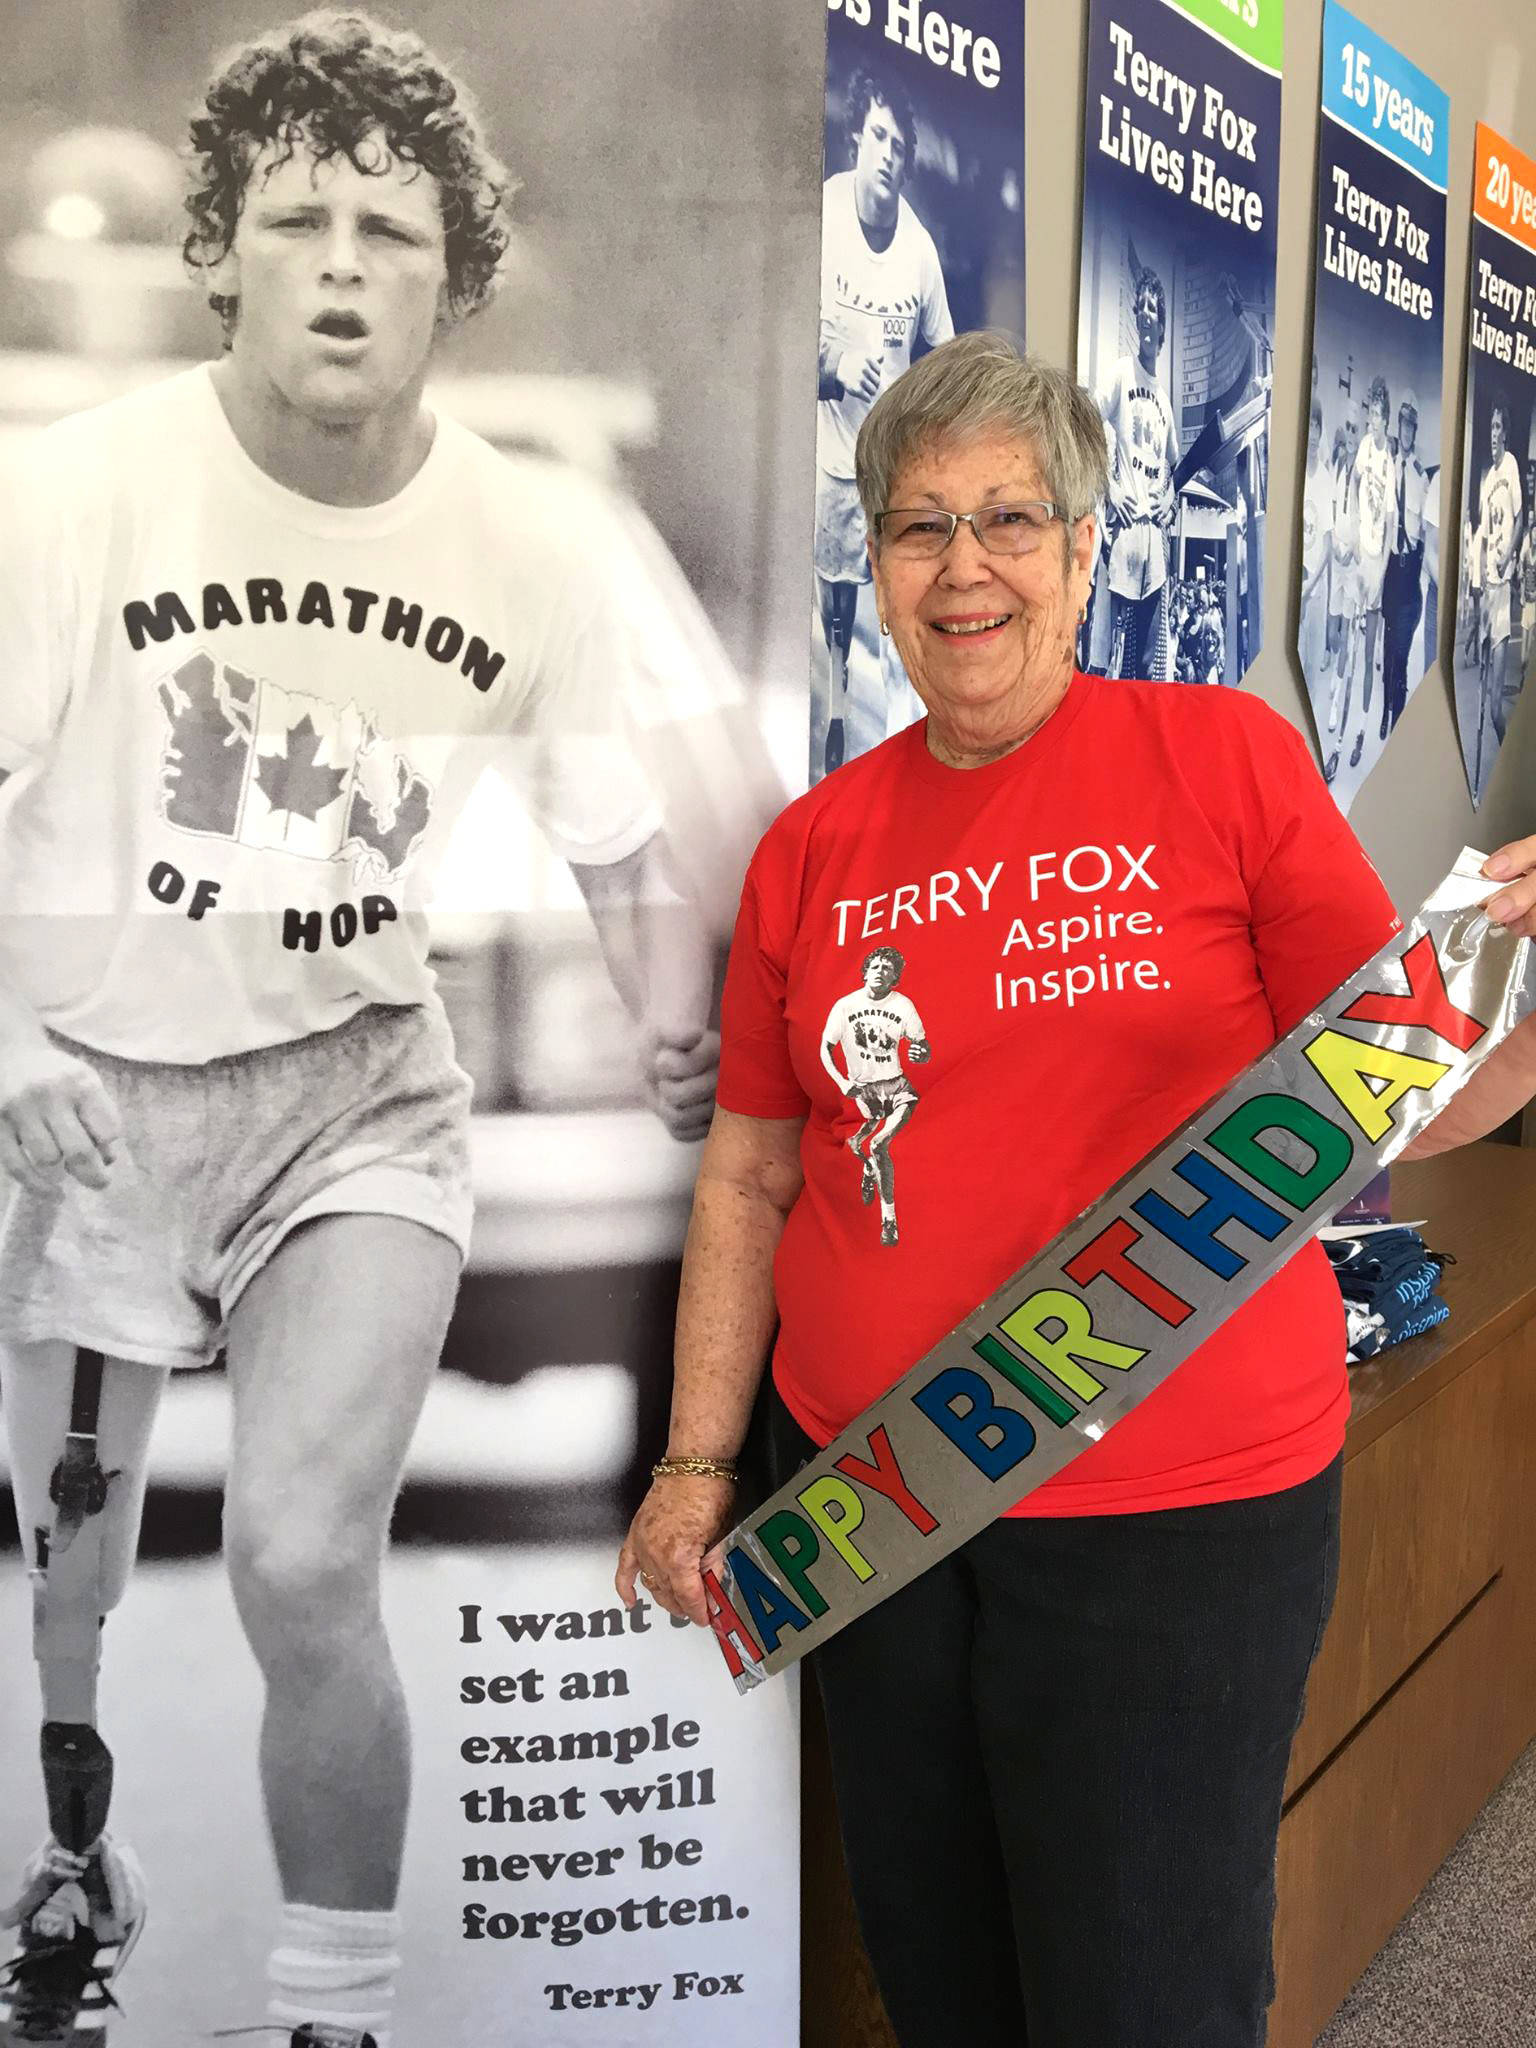 On Sept. 12, 2019 Alison Ince celebrates her 84th birthday. Ince is wearing a red T-shirt like many do at the annual Terry Fox run to celebrate their victory against cancer. Ince was Terry Fox's nurse when he was a patient at Royal Columbian Hospital in New Westminster. (Terry Fox Foundation/Facebook)